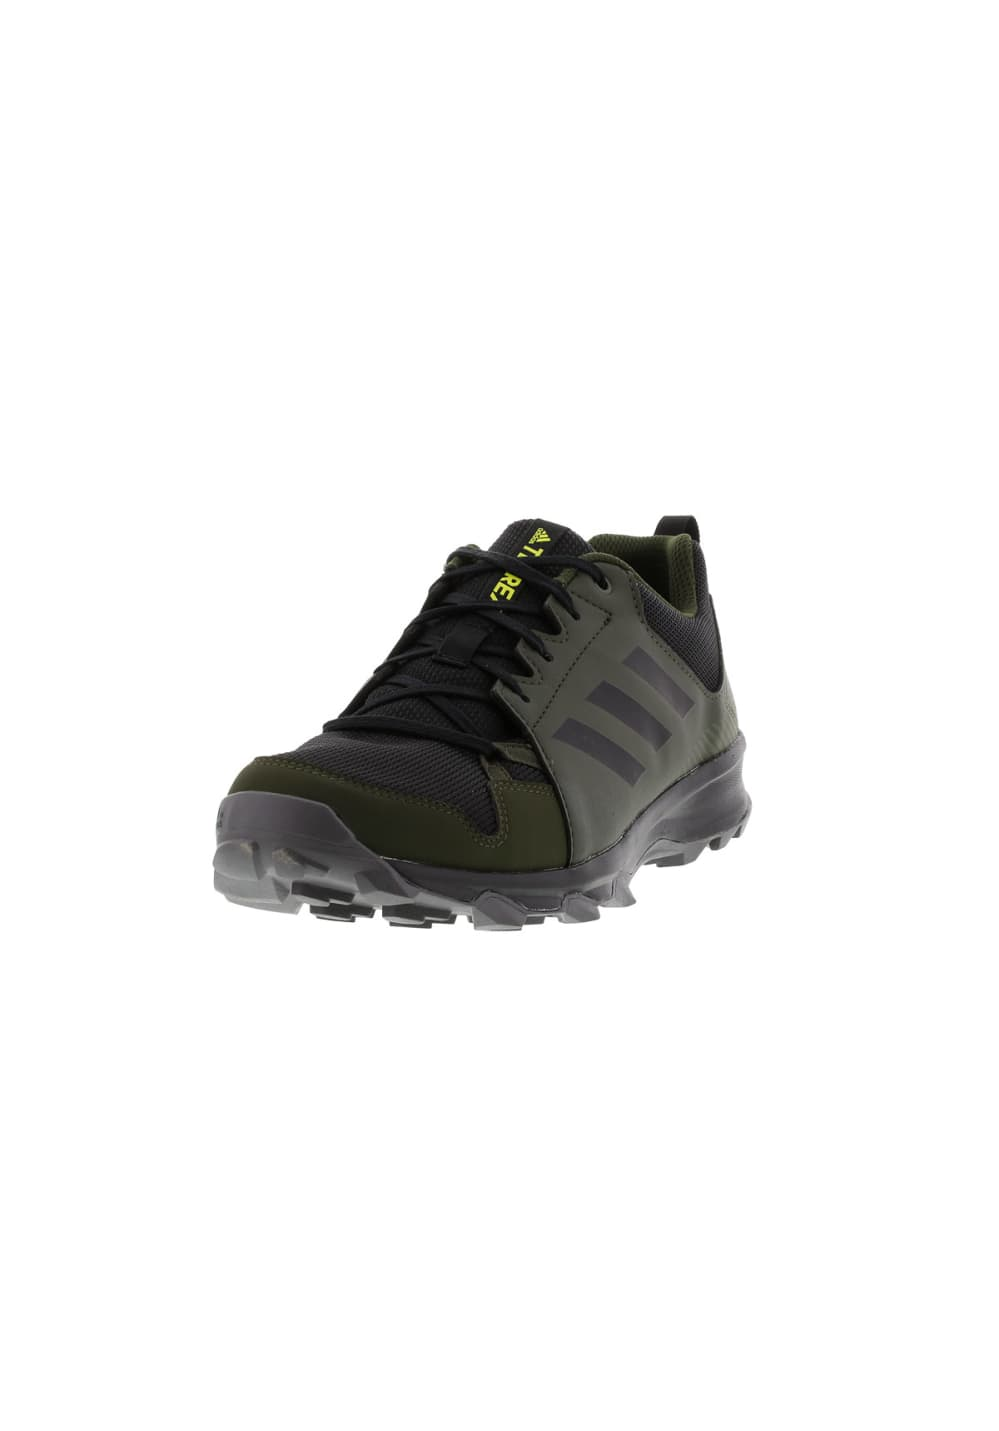 8596aeb66 adidas-terrex-terrex-tracerocker-gtx-outdoor-shoes-men -green-pid-0002000577601.jpg